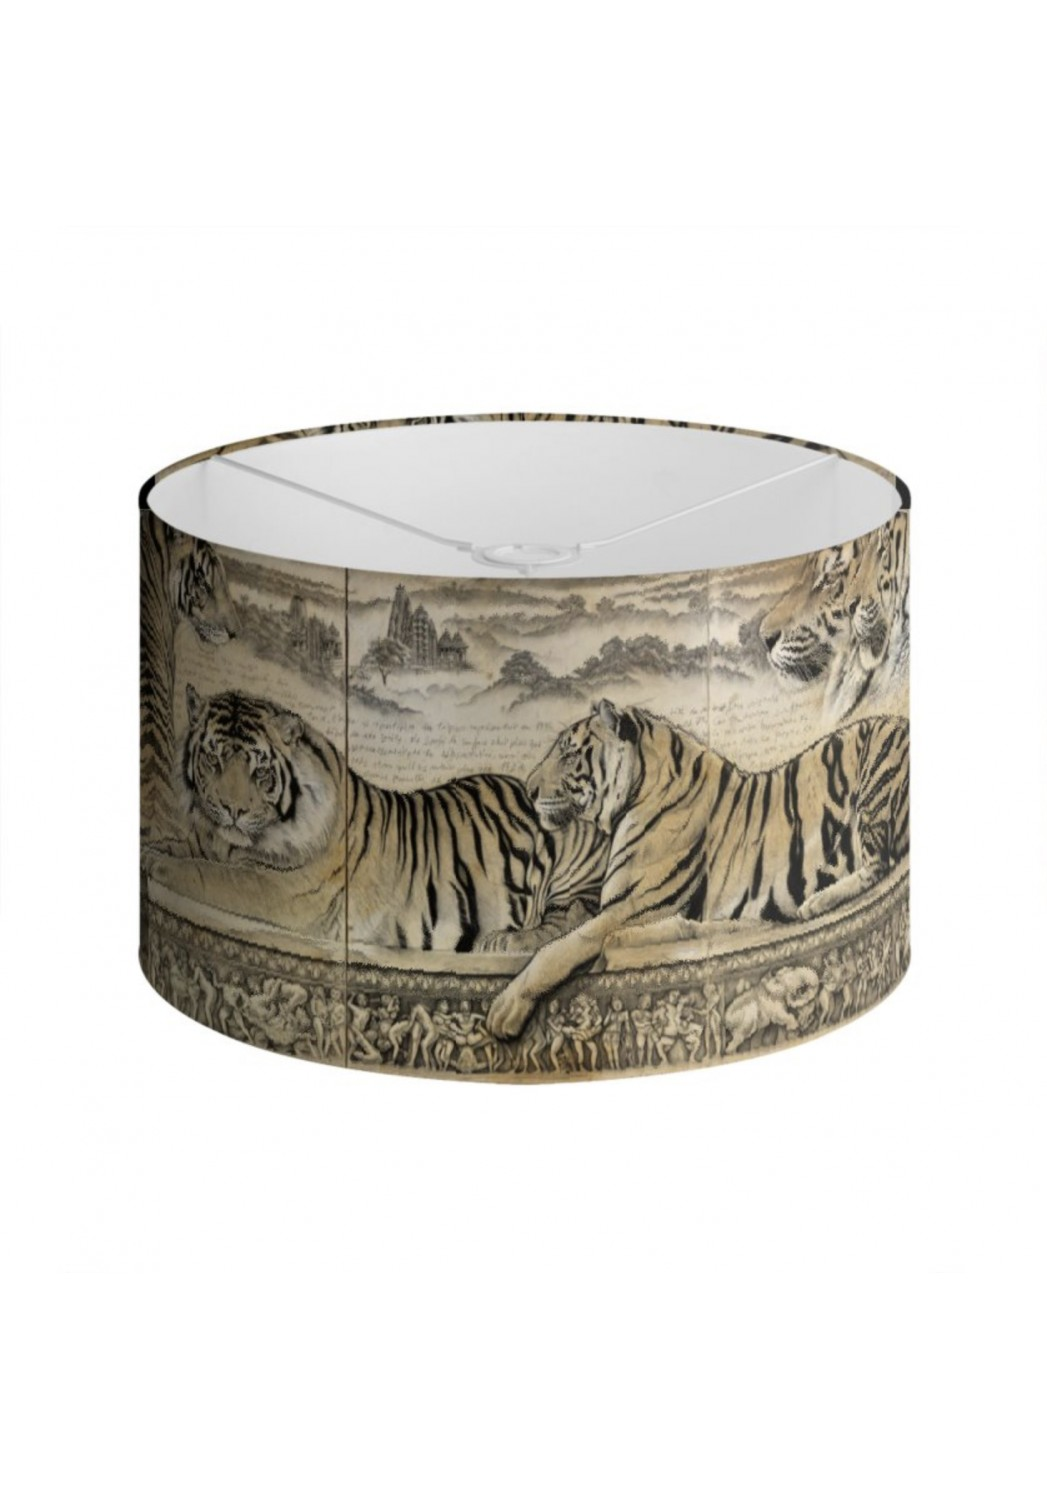 Marcello-art: Decoration accessoiries Lampshade 304 Kamasutra